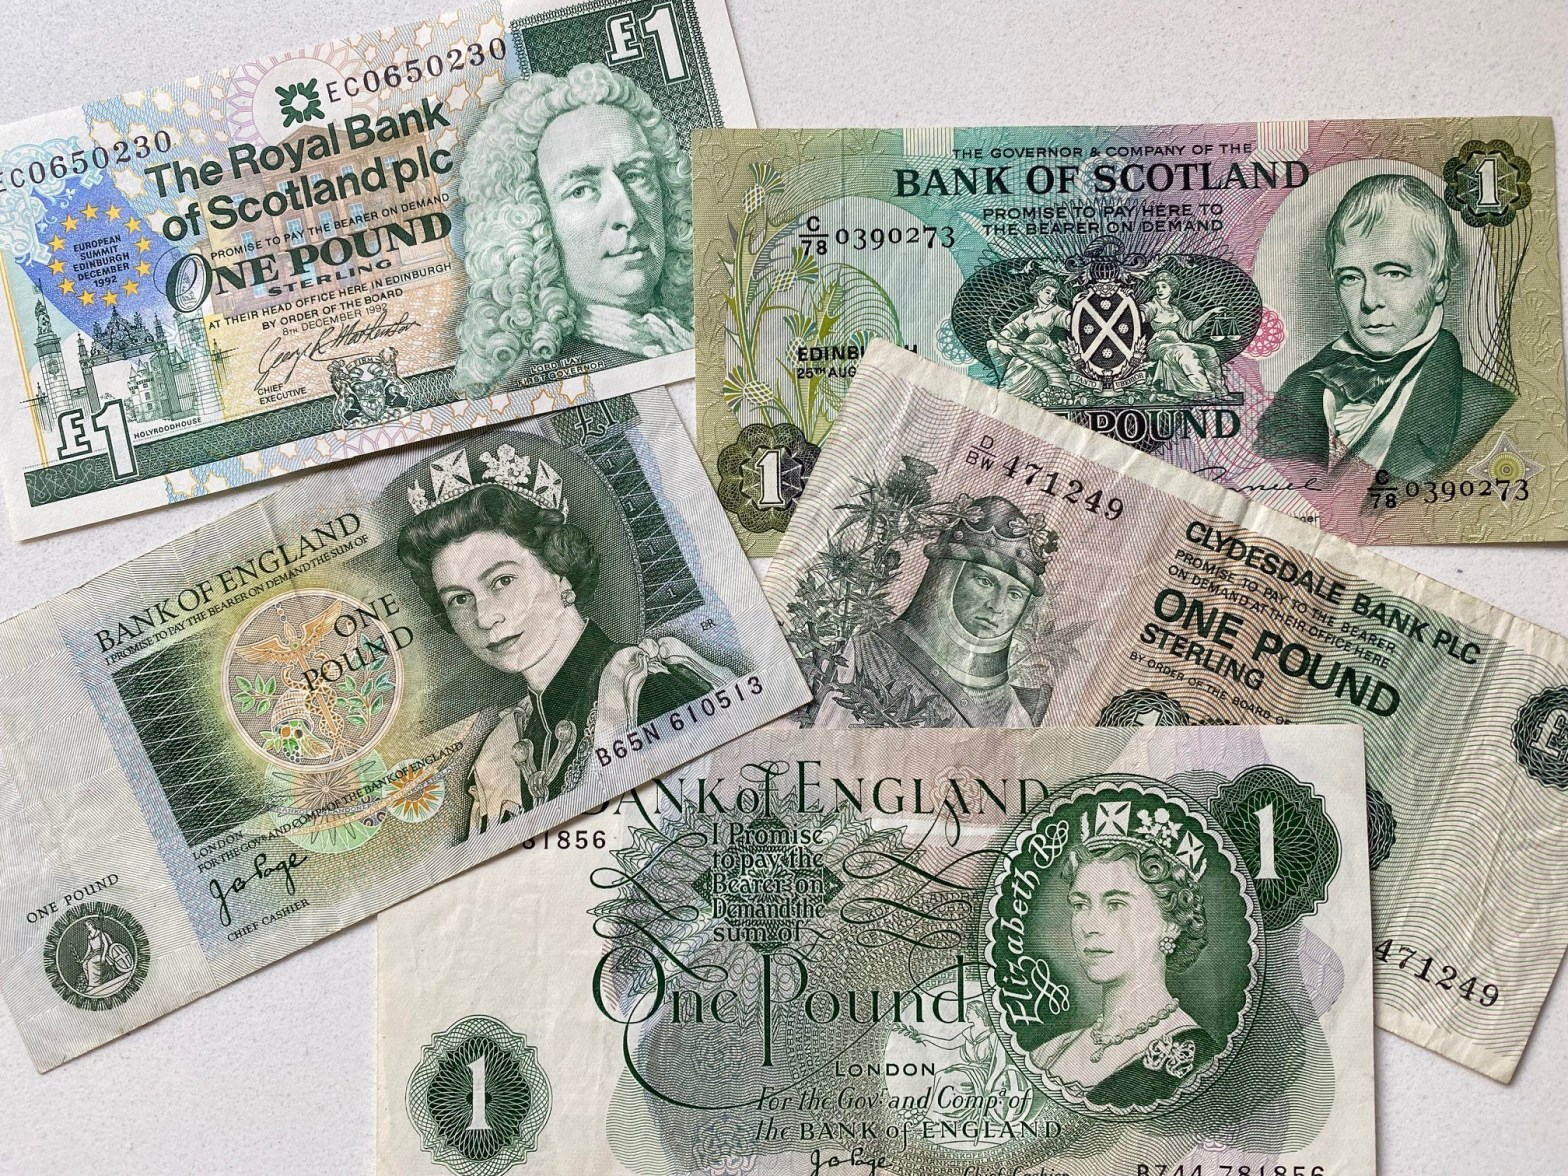 Scottish and English £1 notes are not legal tender